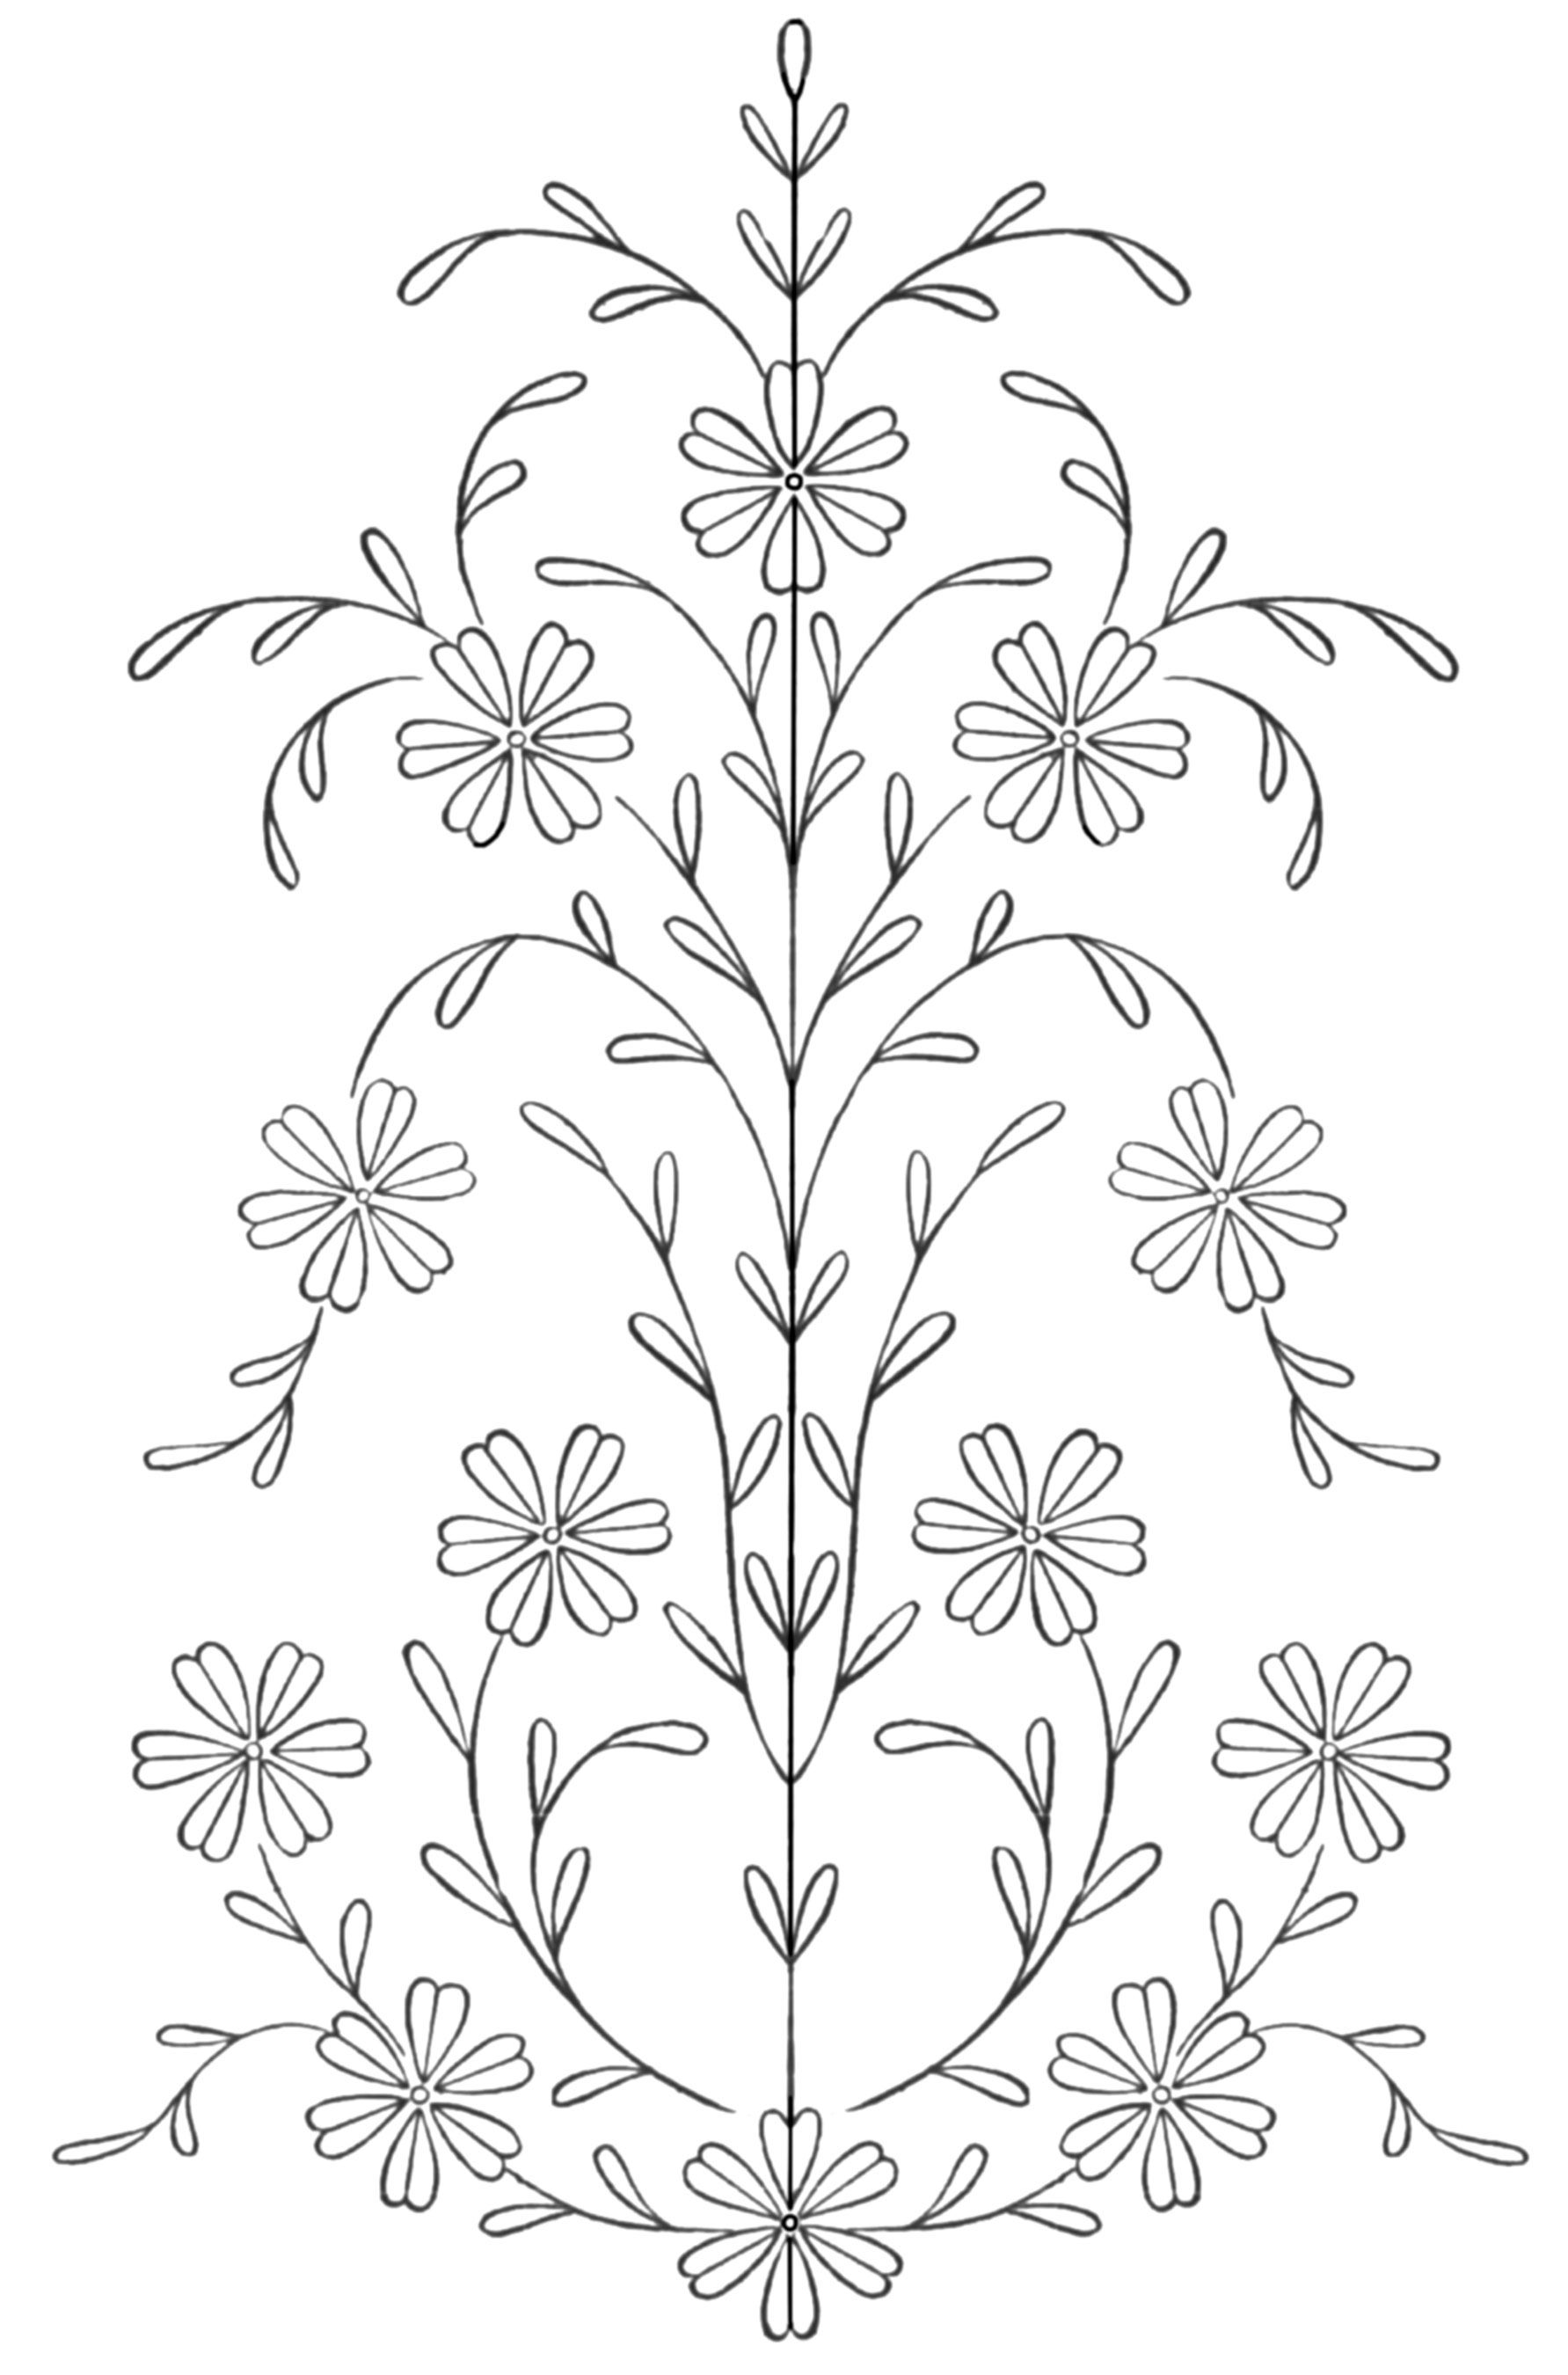 Chicago Daily Tribune, 1911 -- Embroidery Design for Skirt | flowers ...